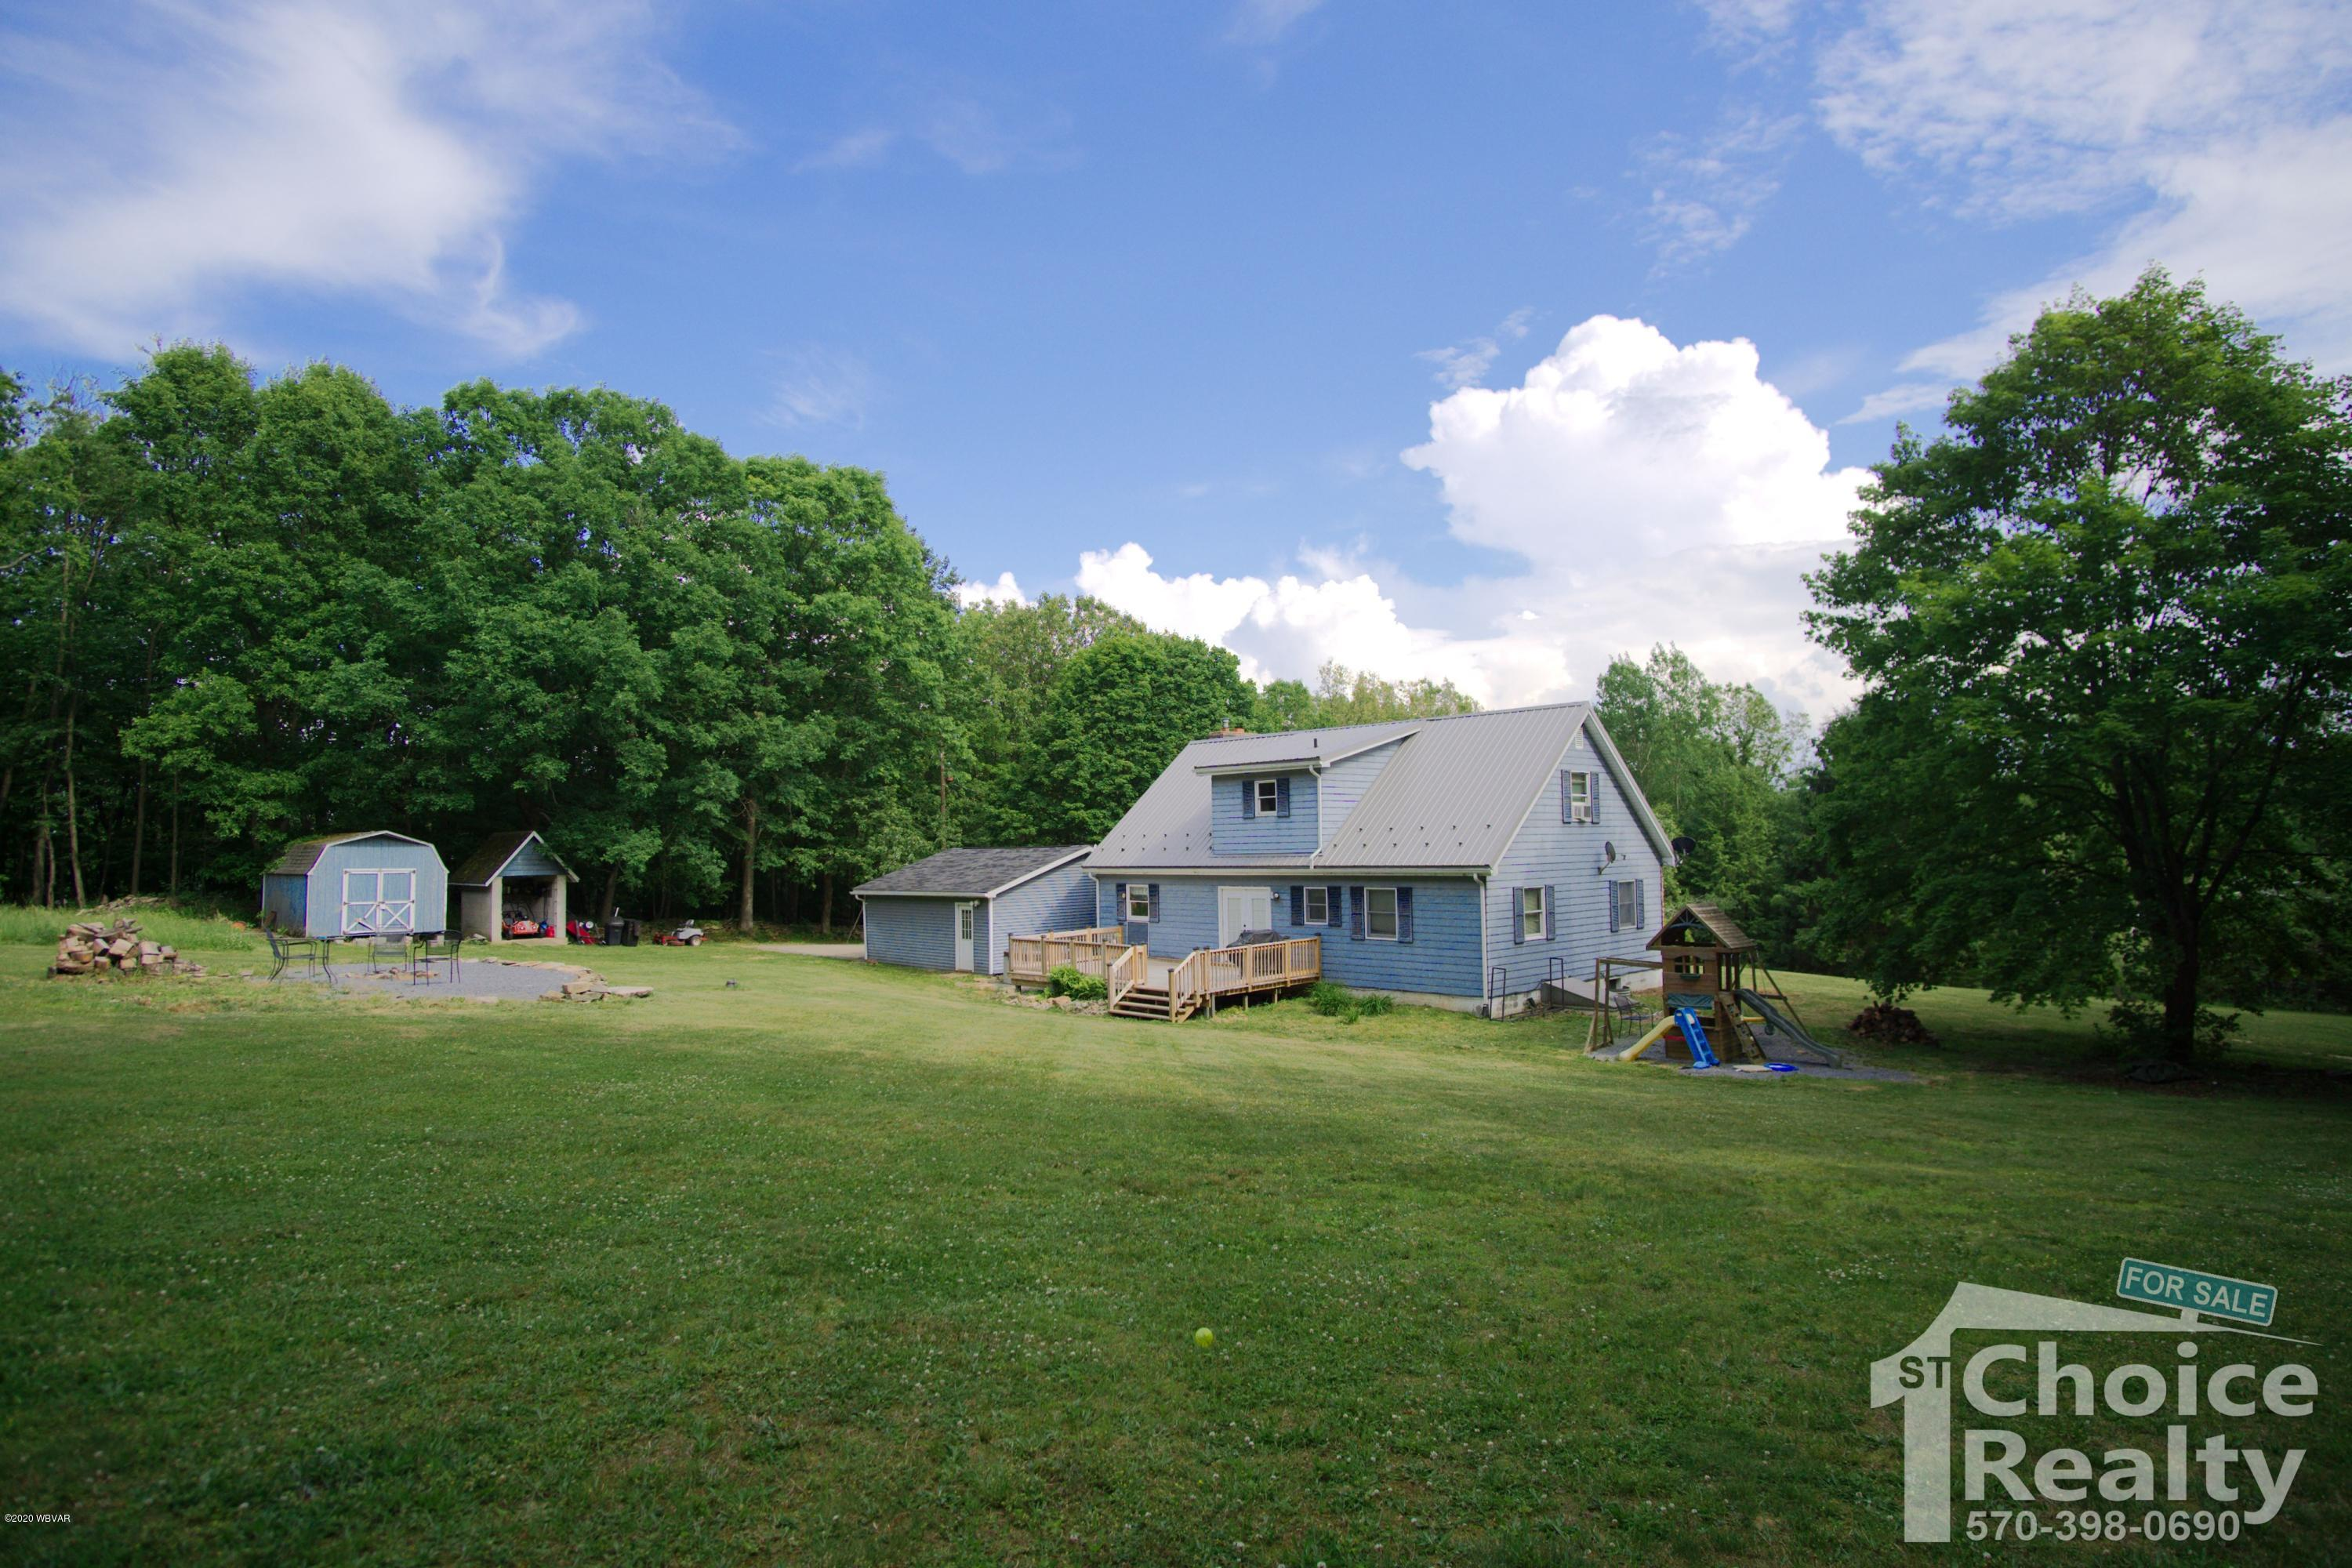 99 OLD CHURCH LANE, S. Williamsport, PA 17702, 4 Bedrooms Bedrooms, ,2.5 BathroomsBathrooms,Residential,For sale,OLD CHURCH,WB-90381